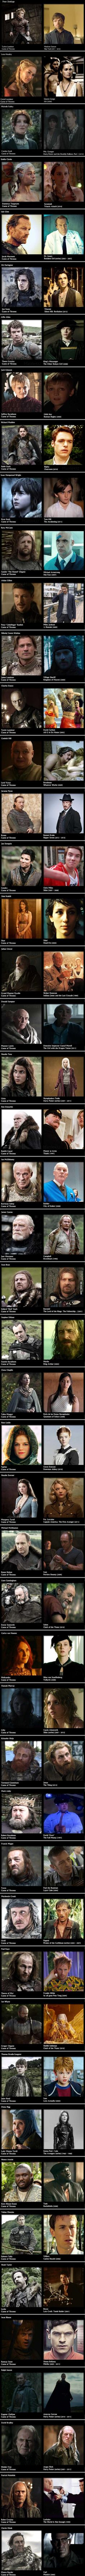 Actors from Game of Thrones BEFORE Game of Thrones